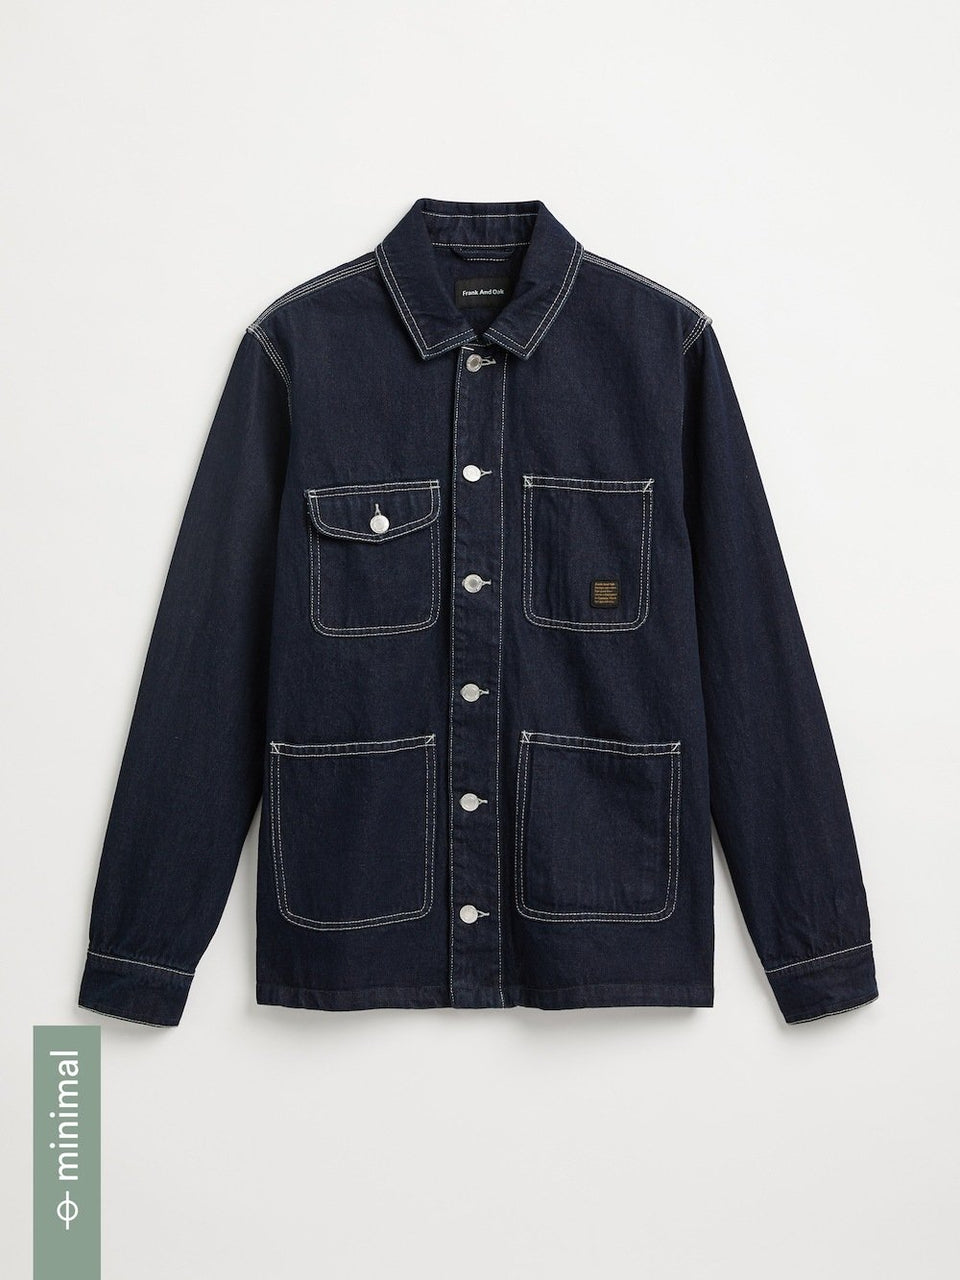 frank & oak -  good cotton denim overshirt